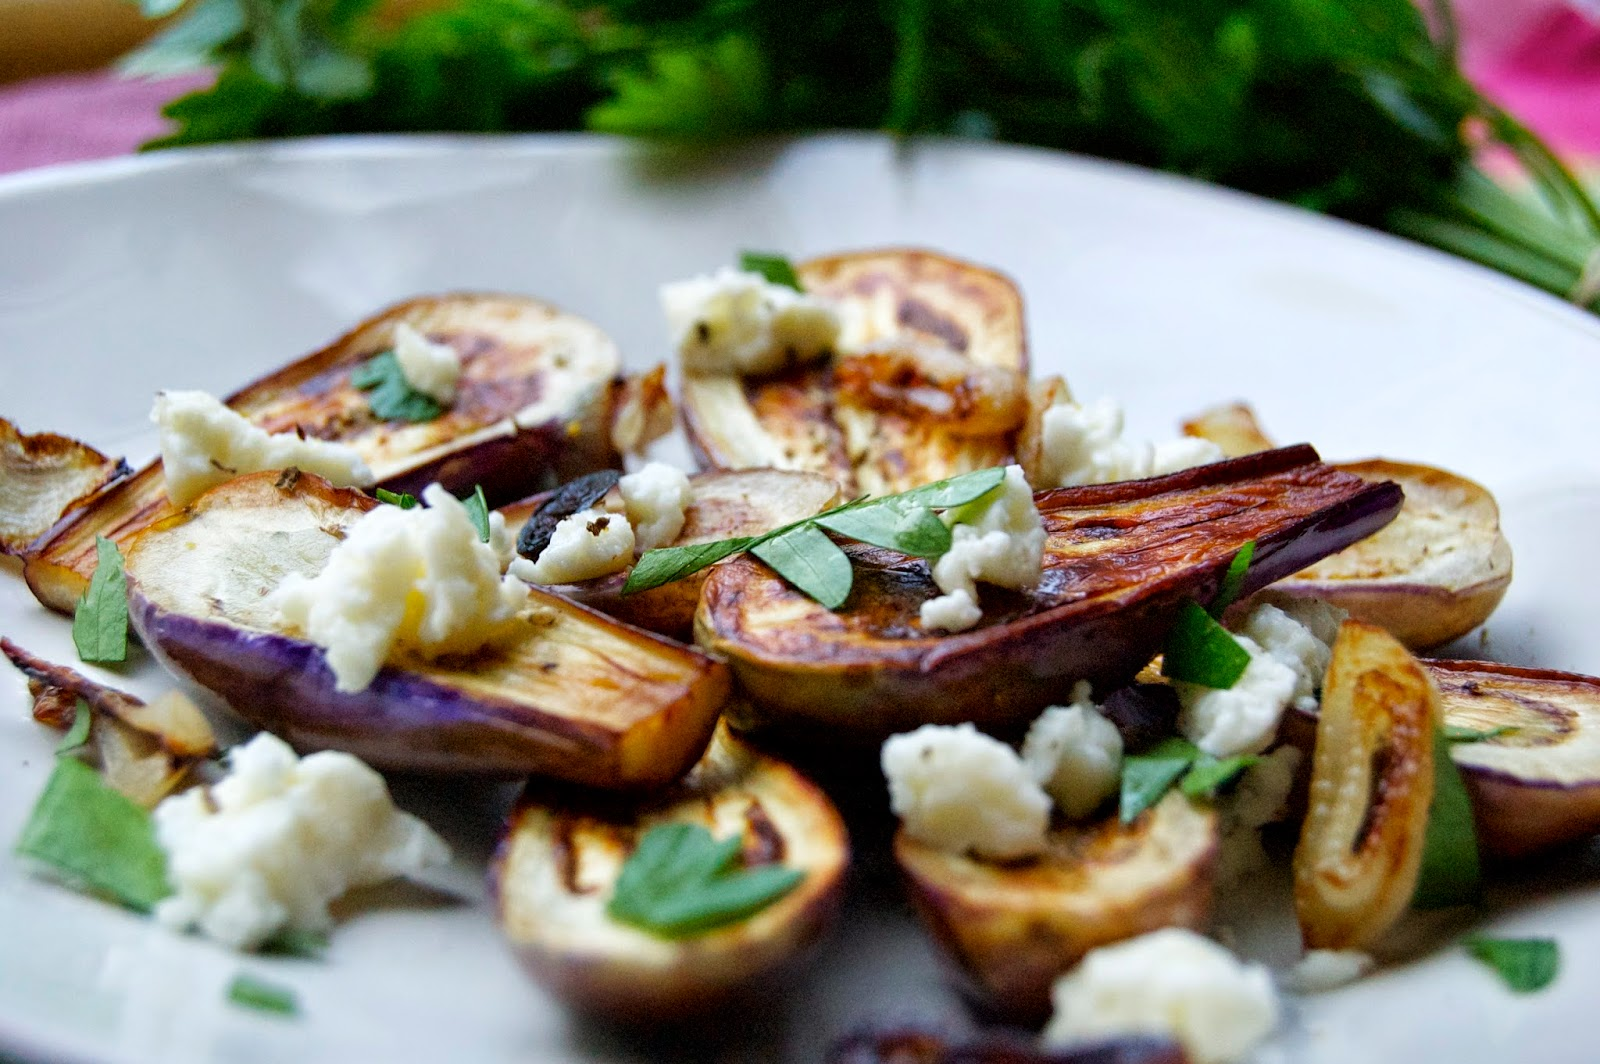 Fairytale Eggplant with Farmers Cheese | www.kettlercuisine.com